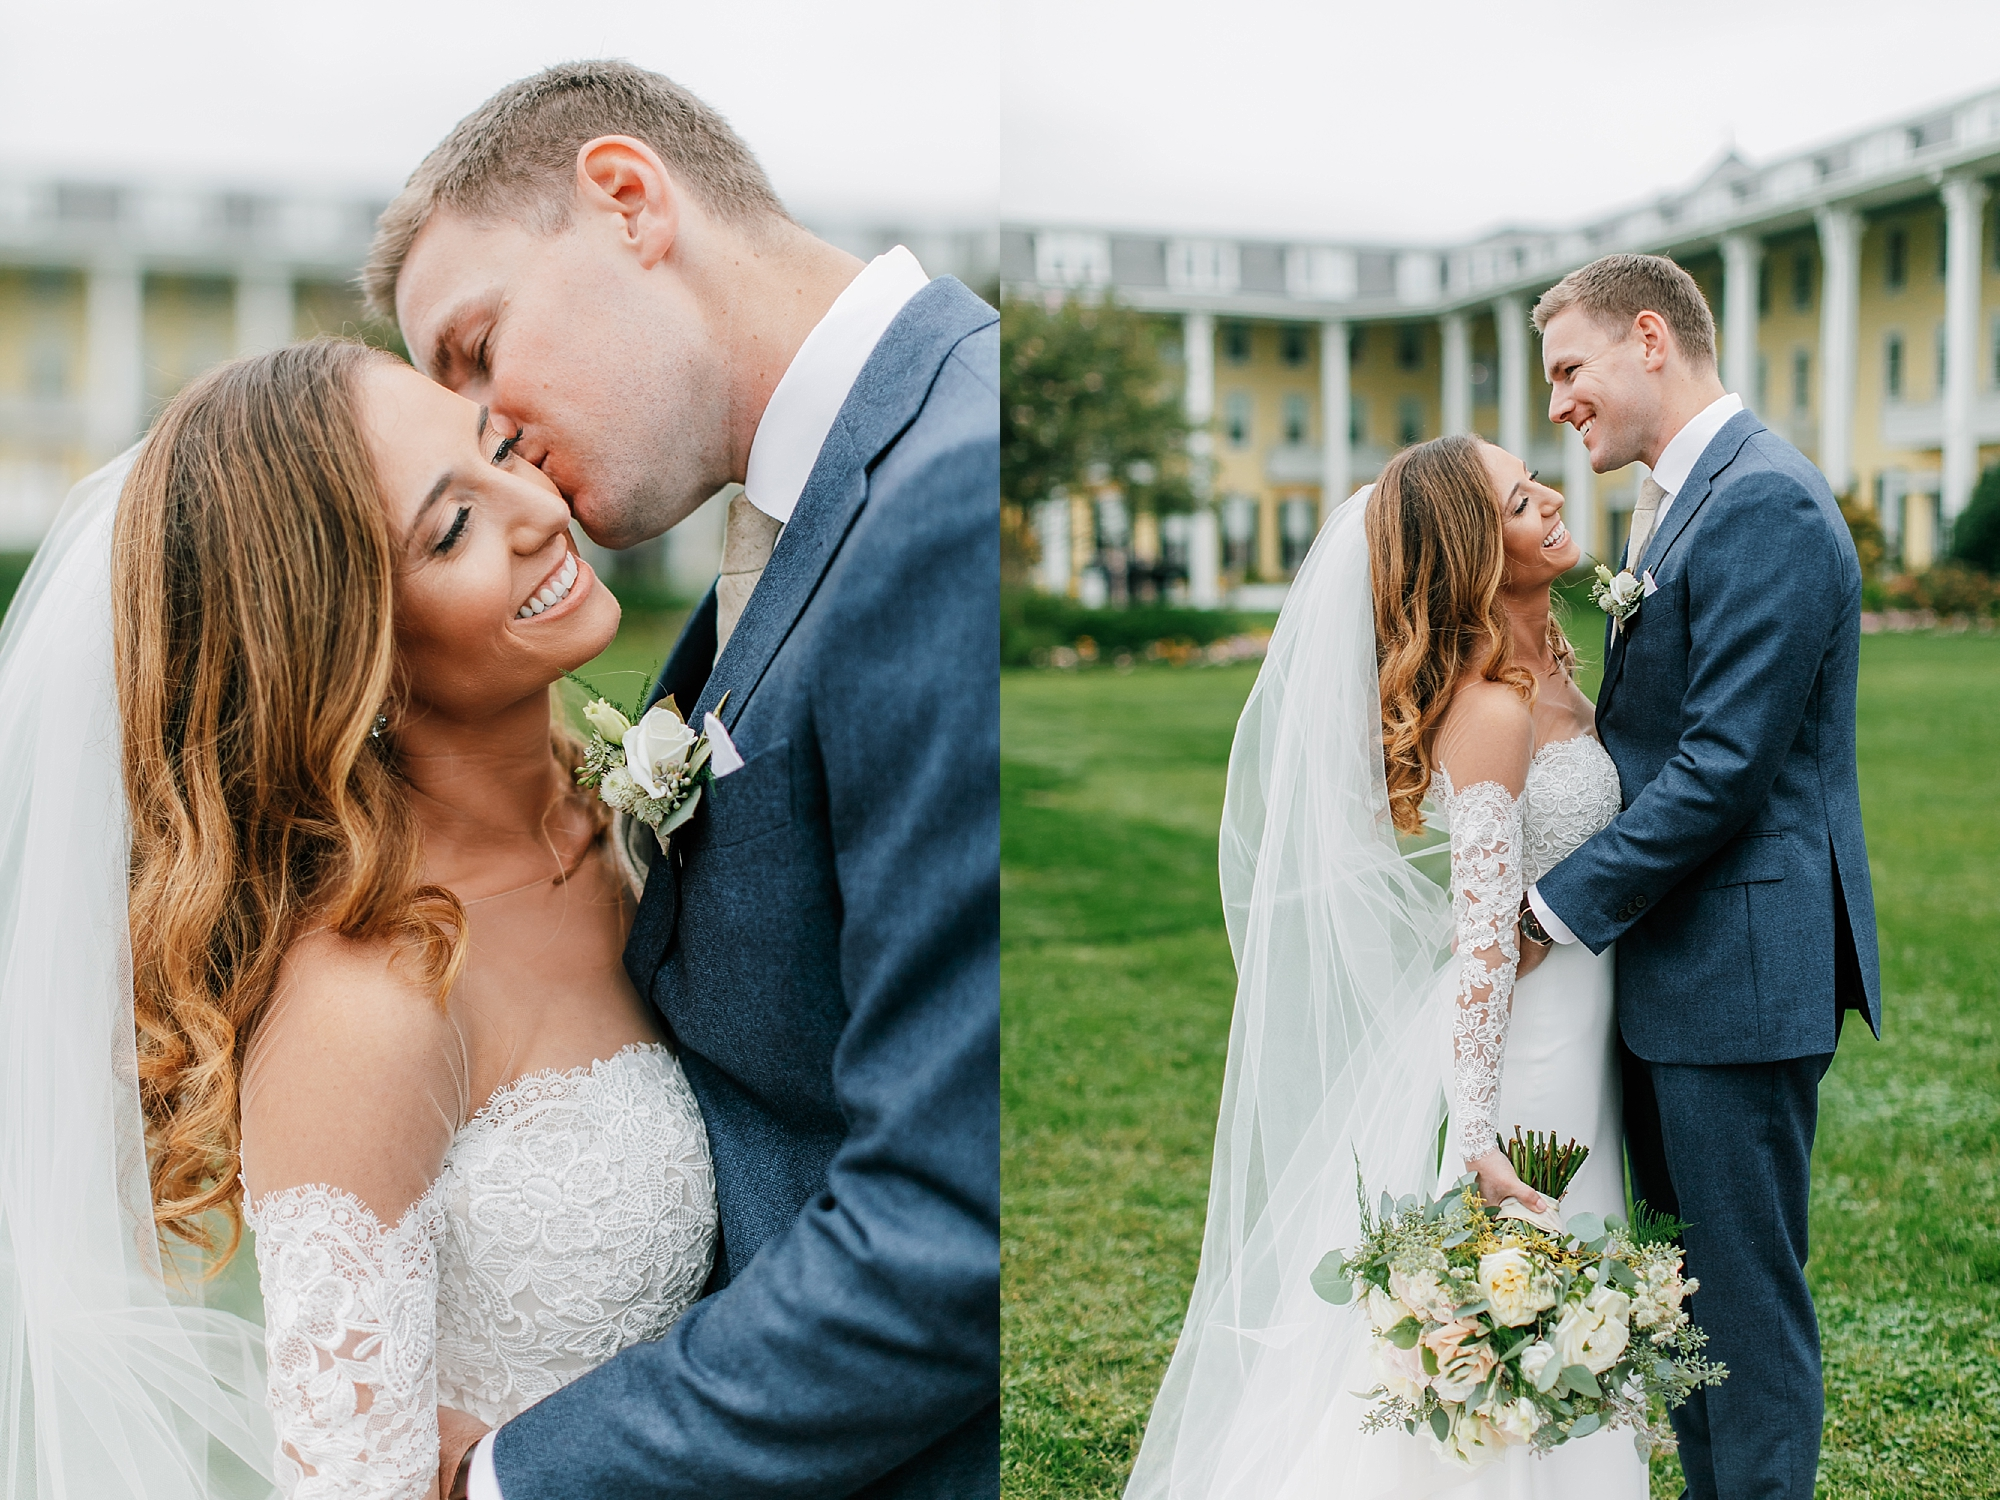 Intimate and Joyful Wedding Photography in Cape May NJ by Magdalena Studios 0016 4